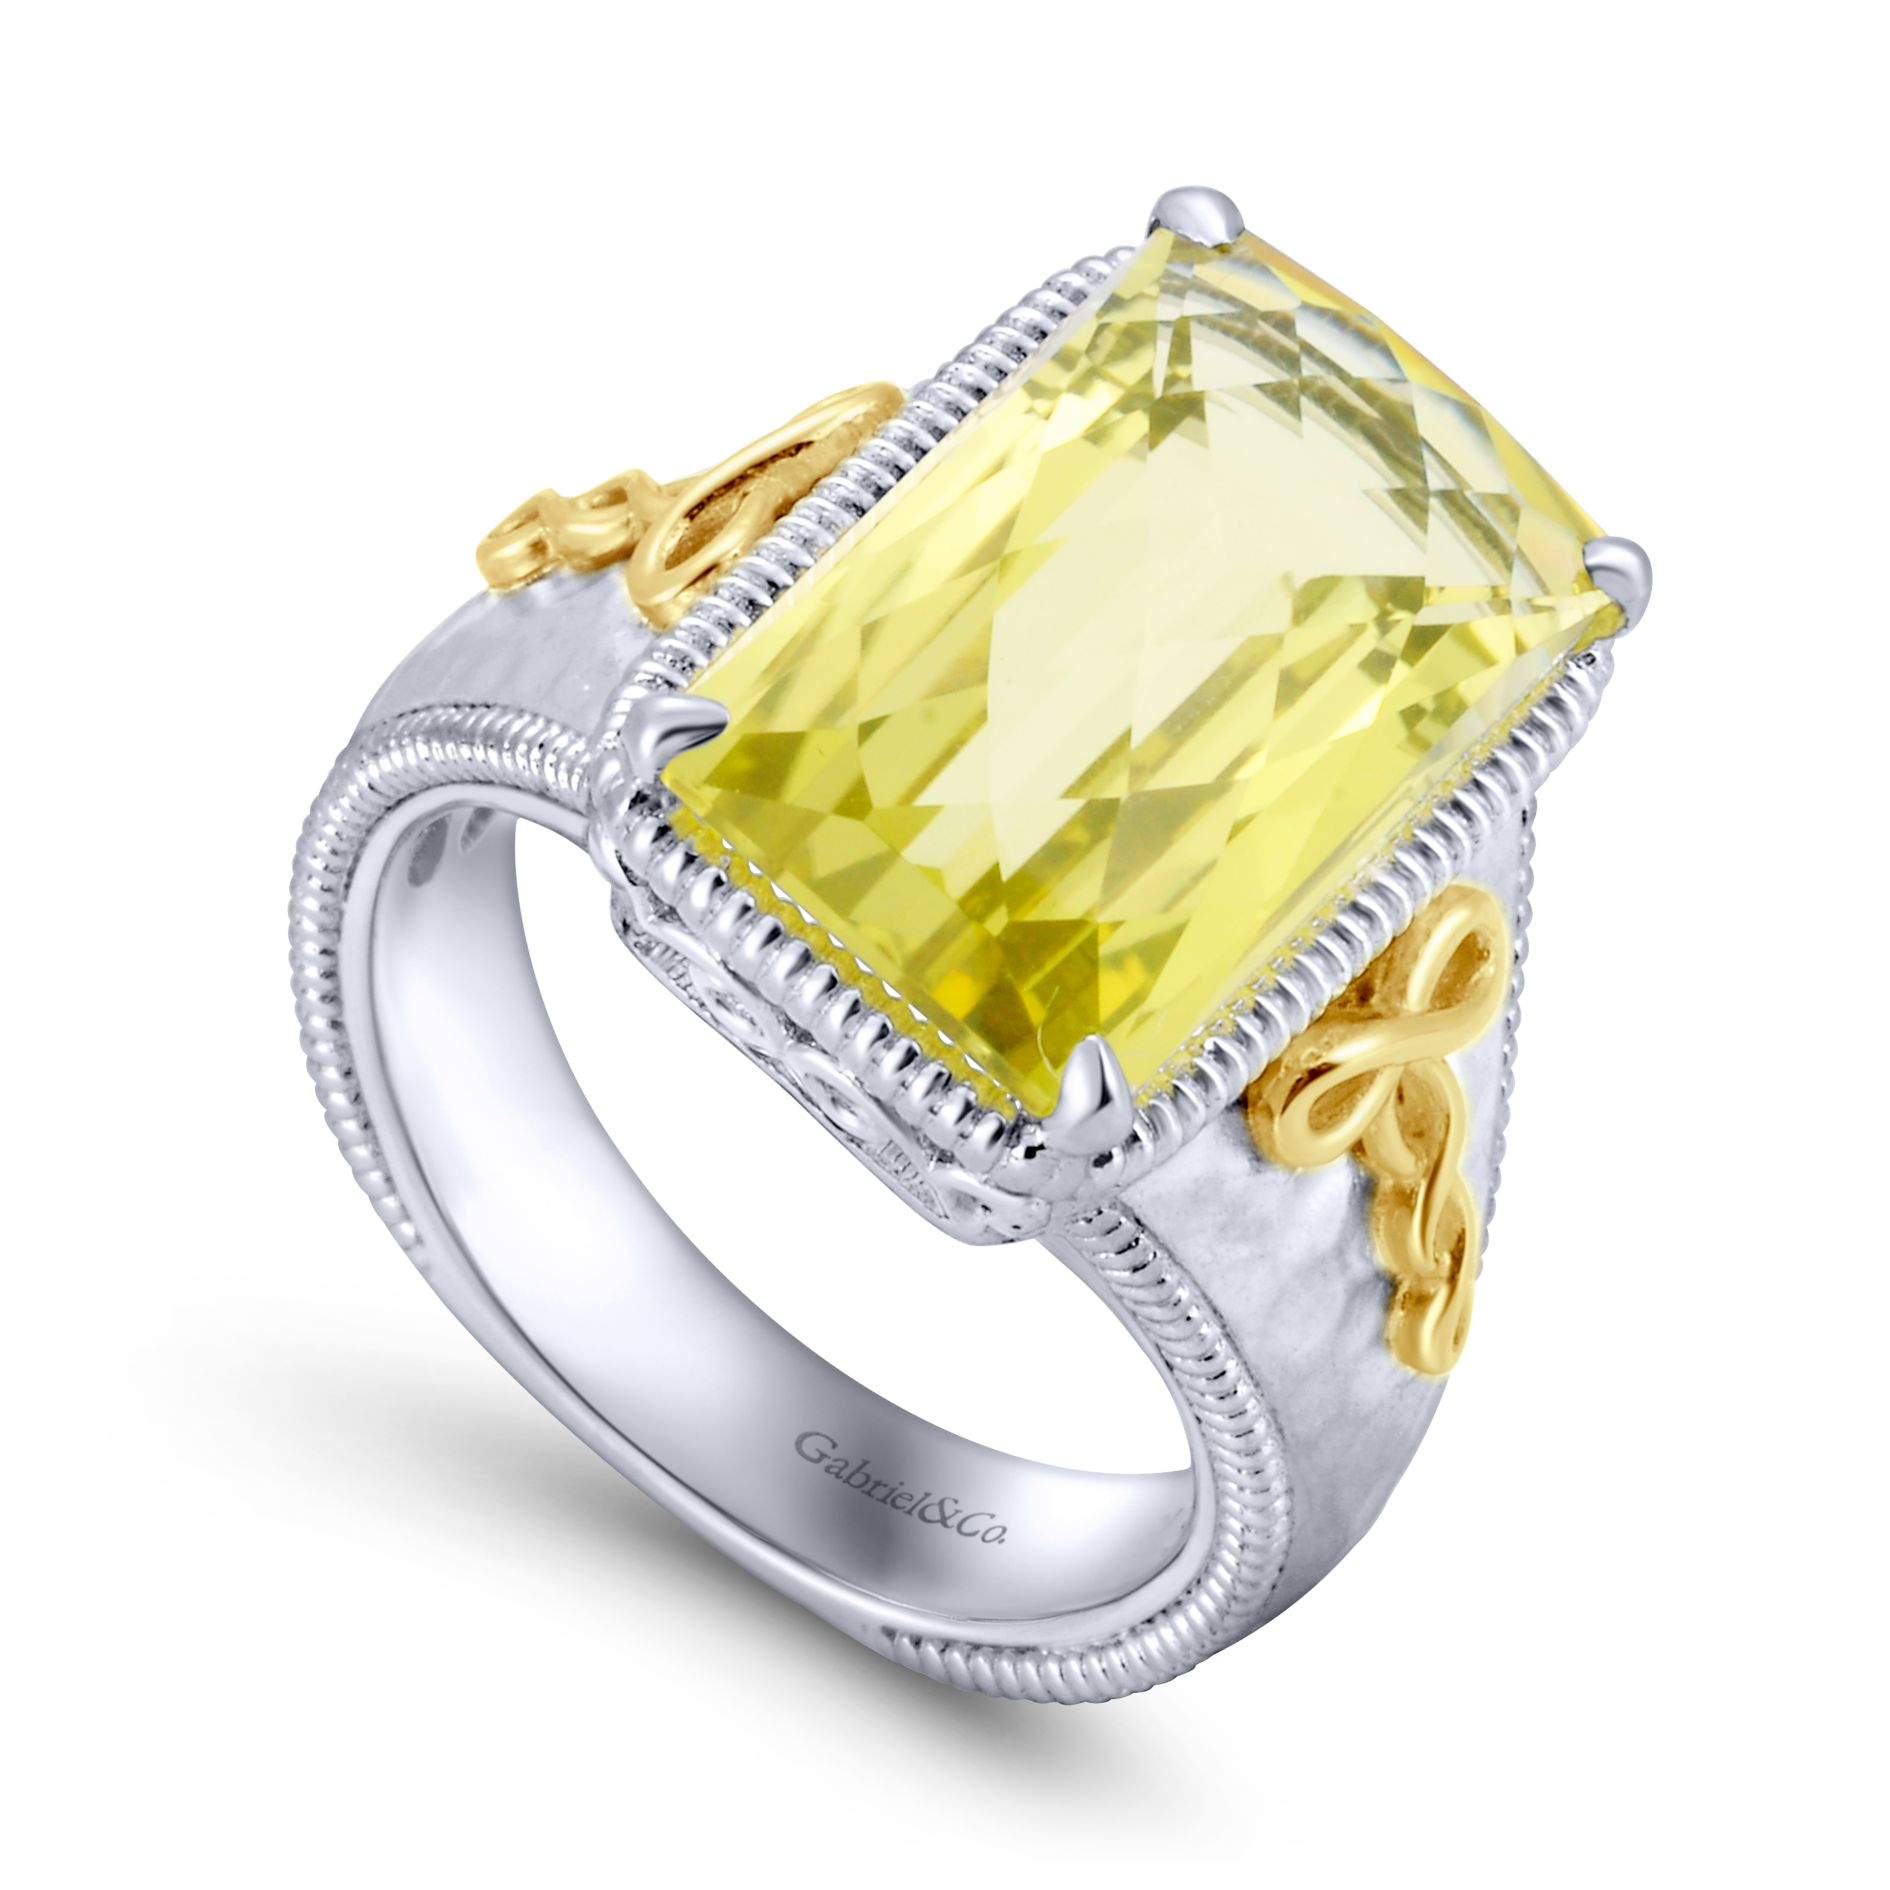 Rings - SILVER/18K YELLOW GOLD FASHION LEMON QUARTZ LADIES RING - image #3